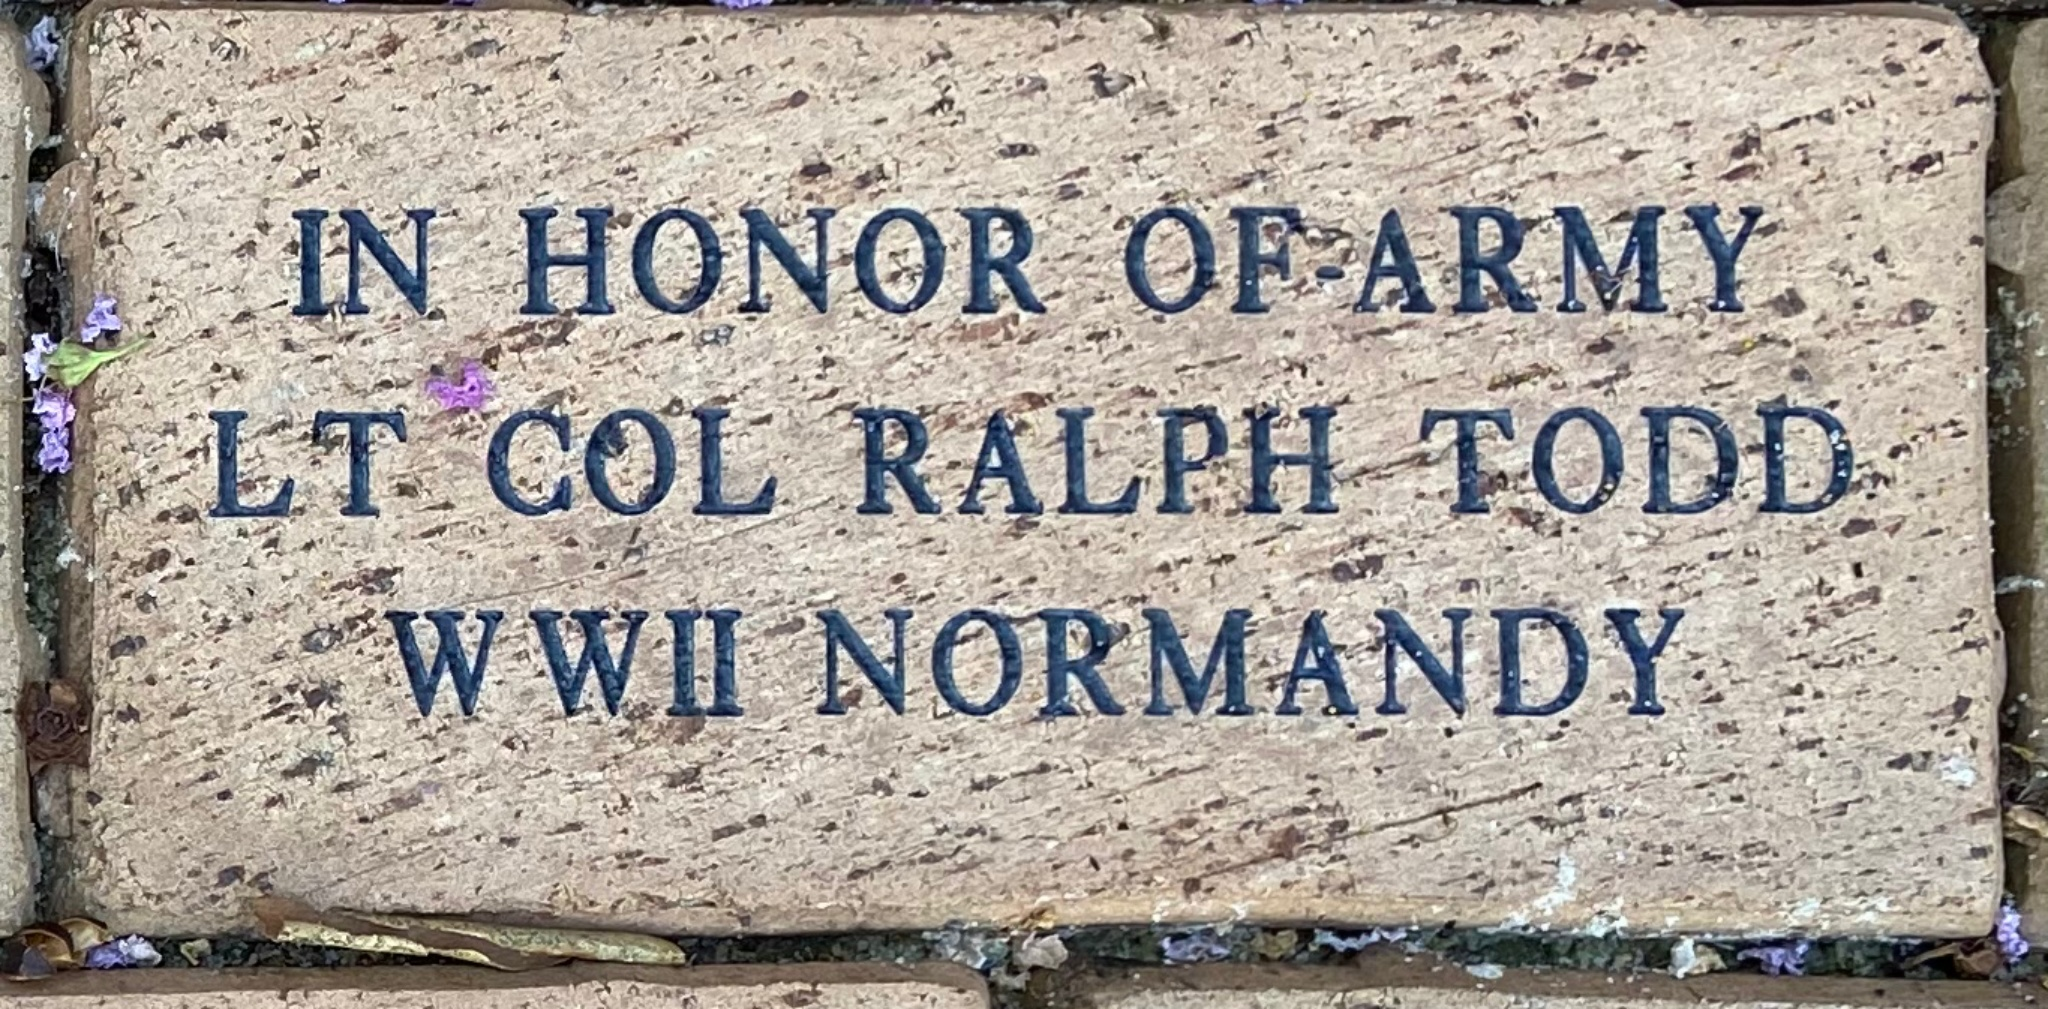 IN HONOR OF ARMY  LT COL RALPH TODD WWII NORMANDY